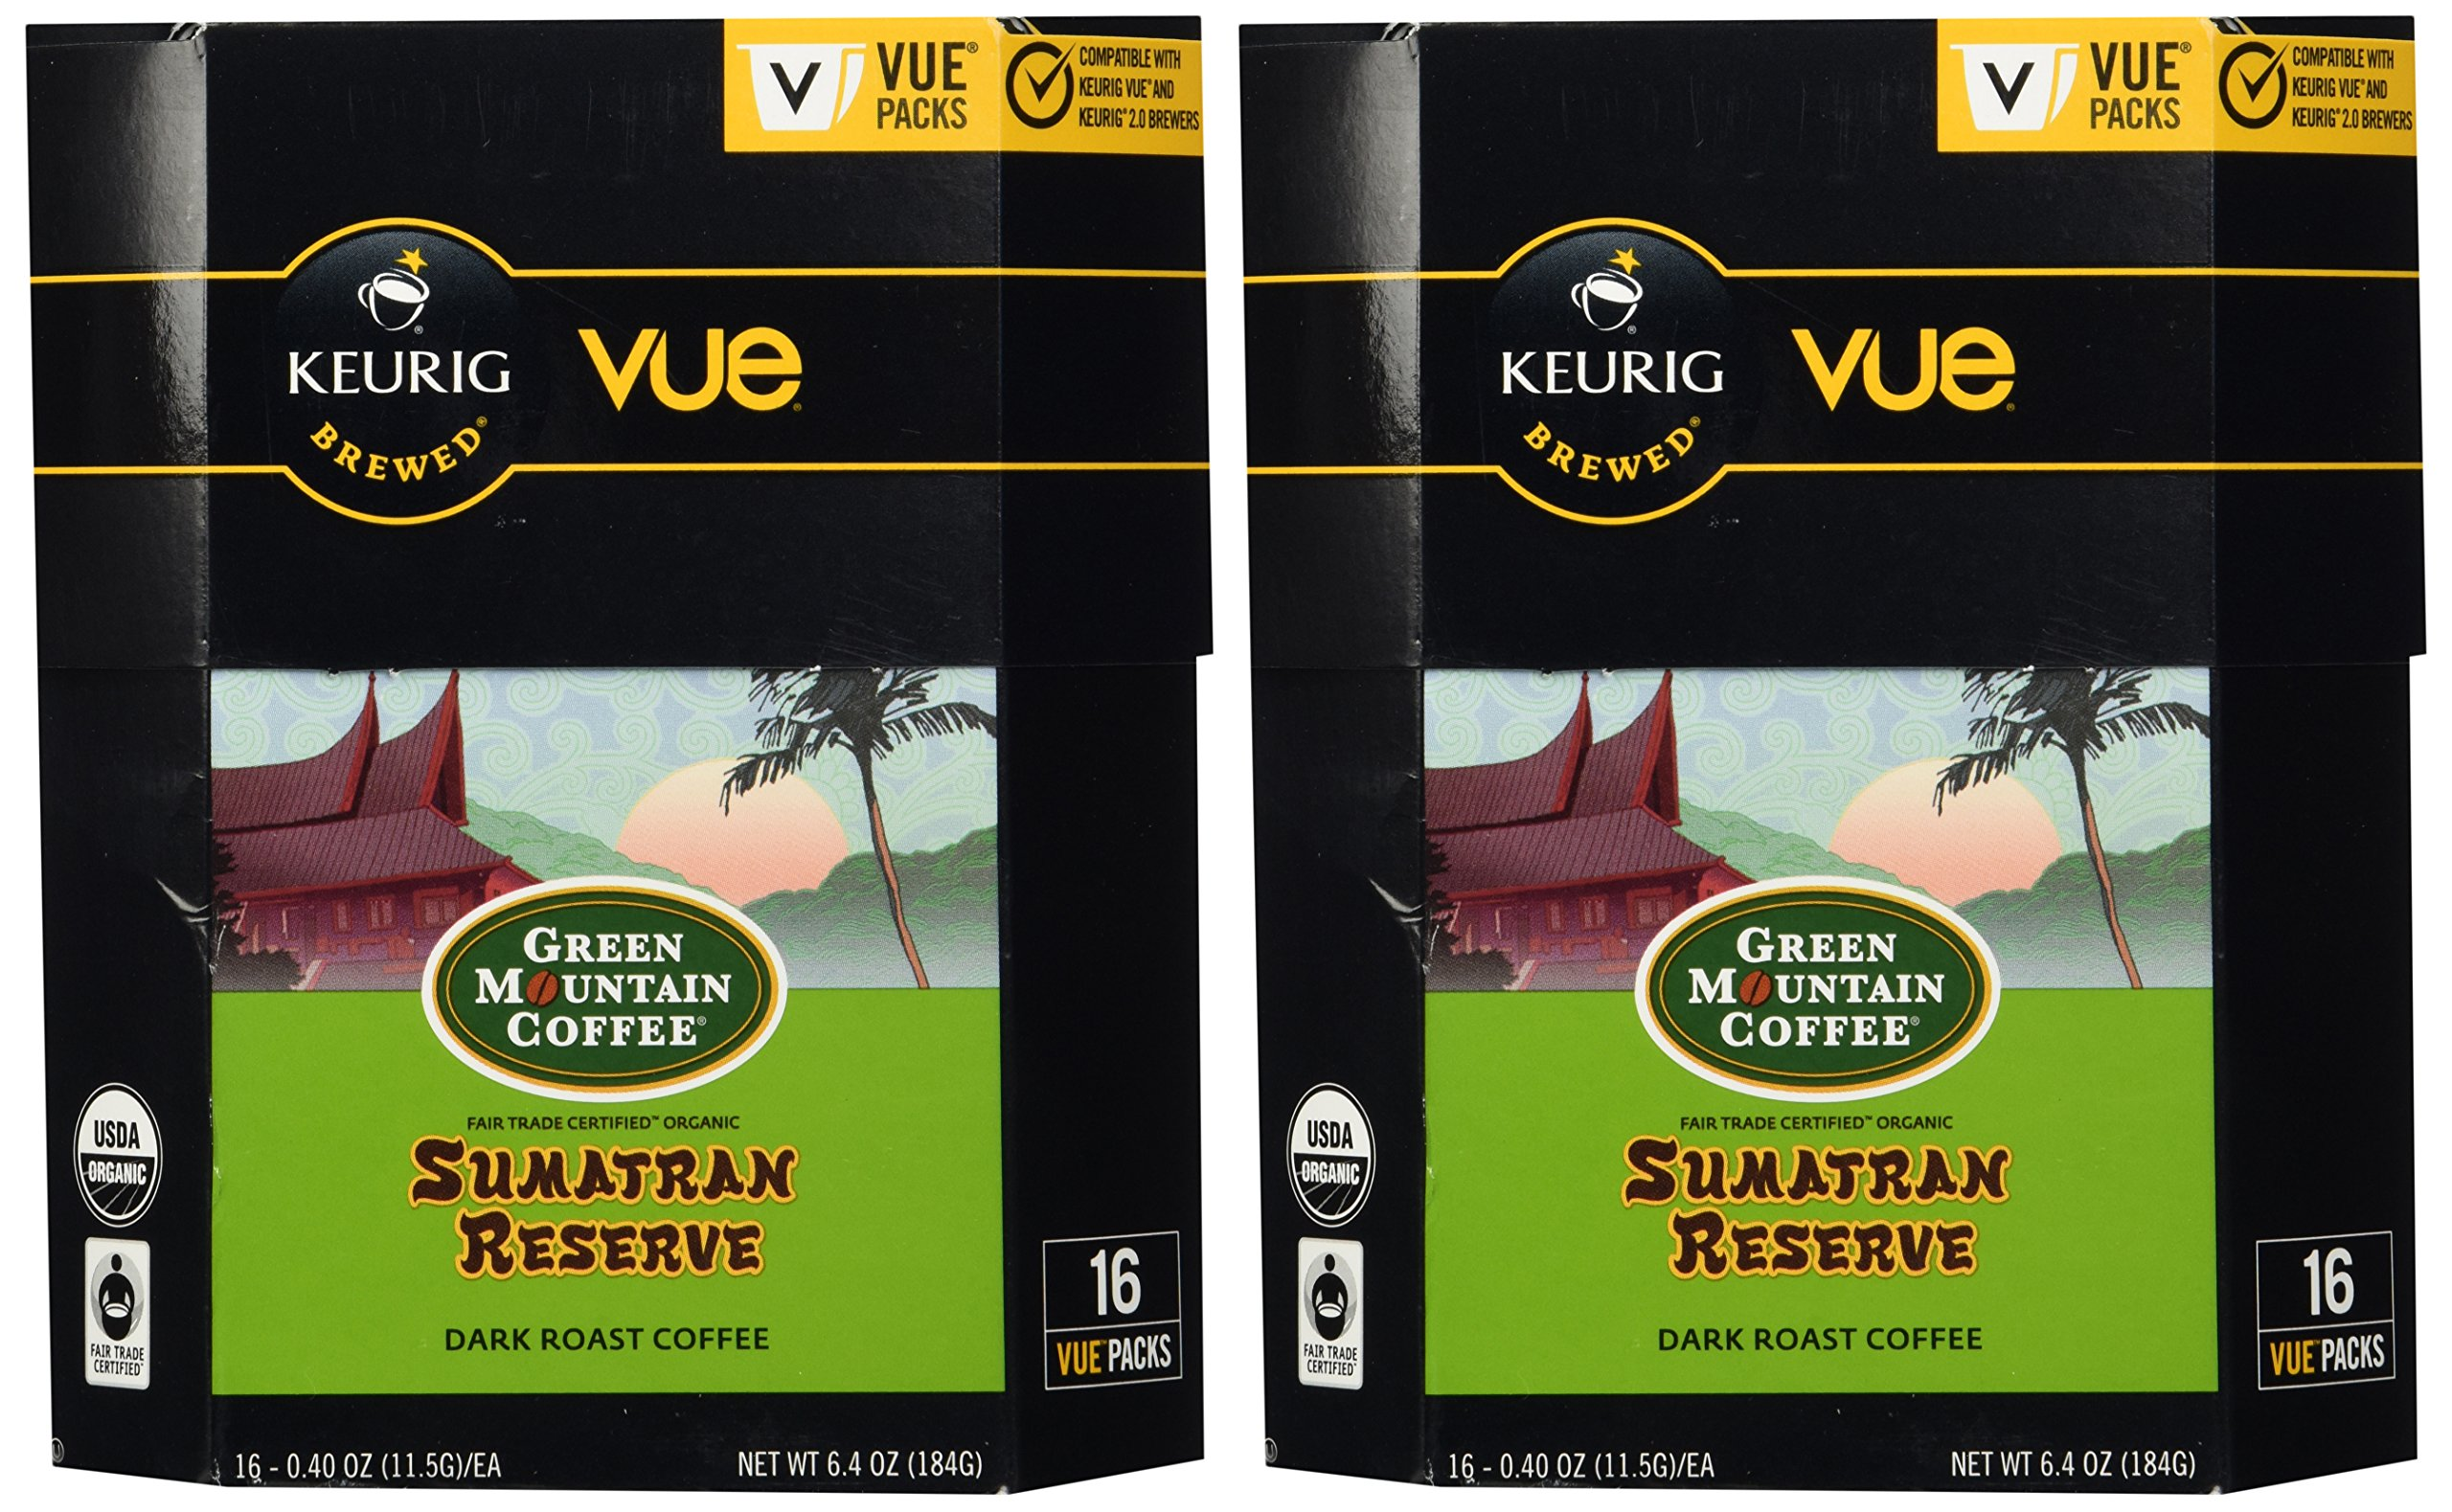 32 Count - Green Mountain Fair Trade Organic Sumatran Reserve Coffee Vue Cup For Keurig Vue Brewers